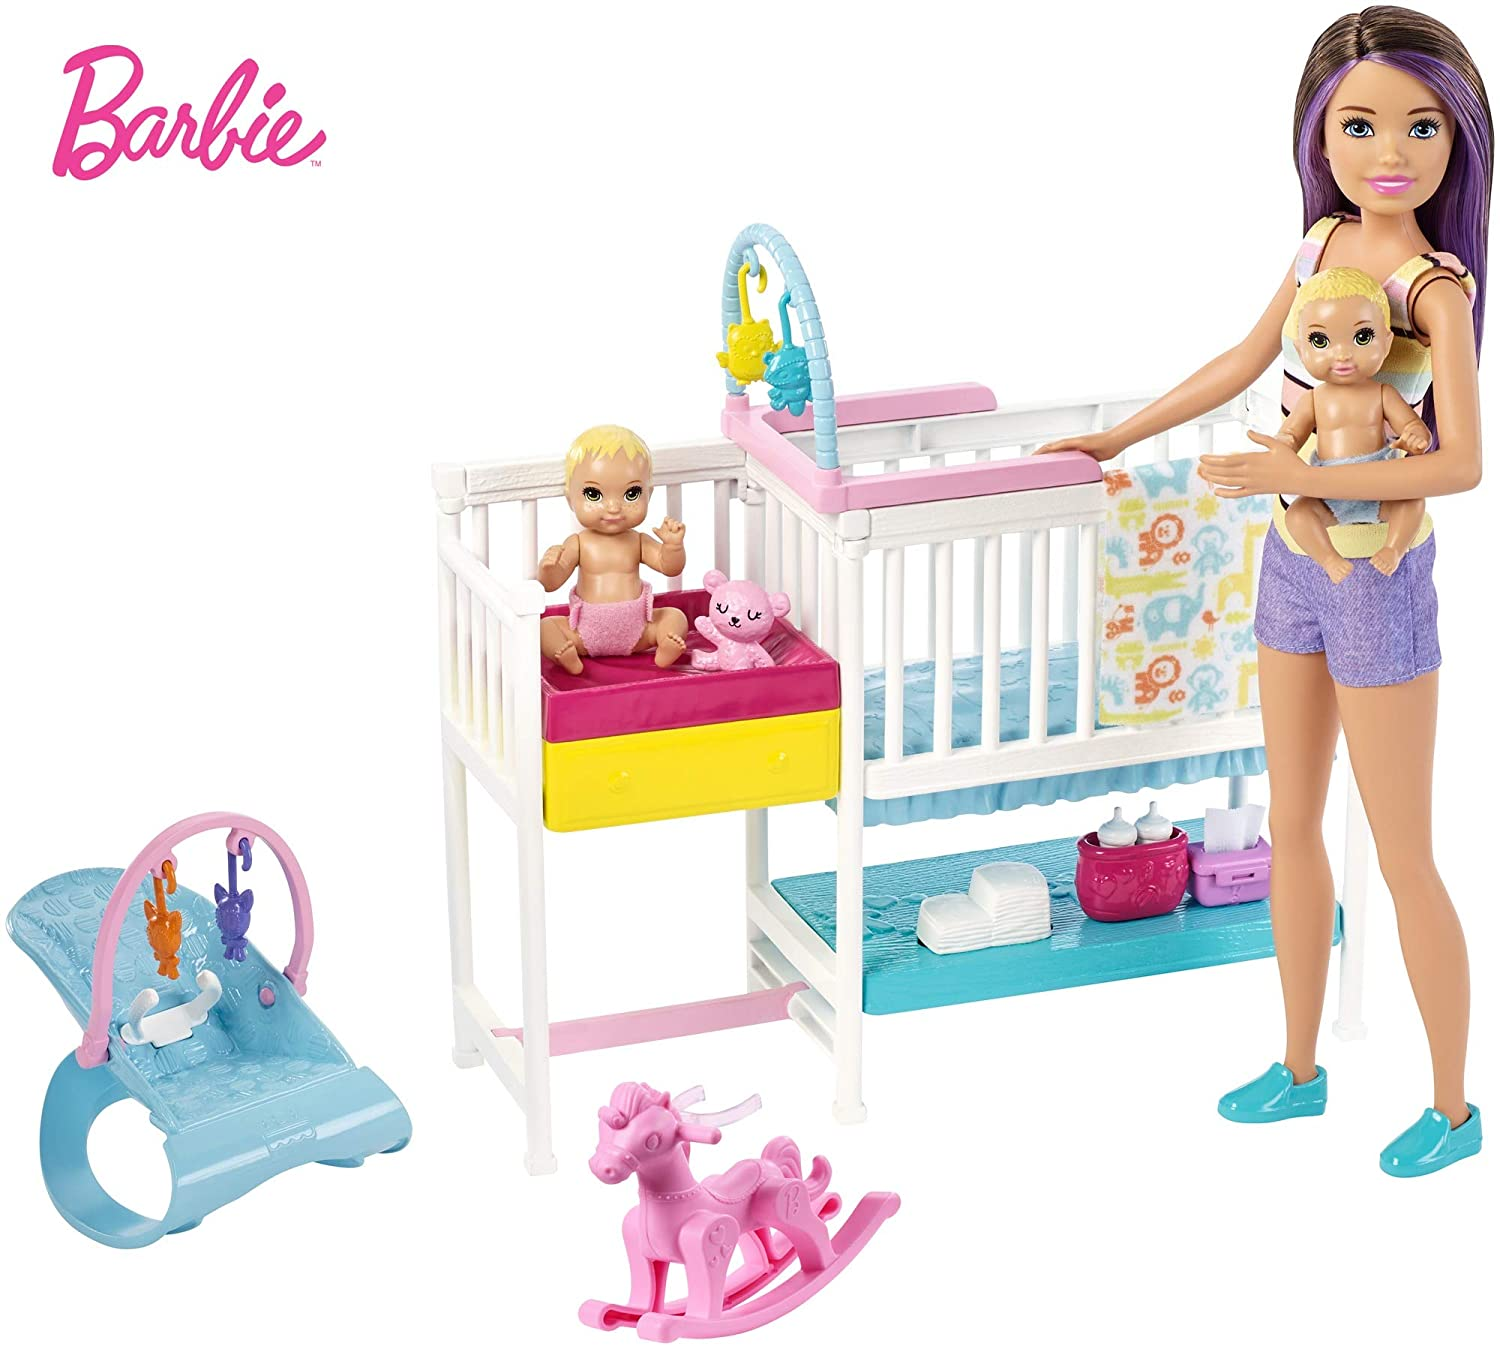 Barbie Skipper Babysitters Dolls and Playset